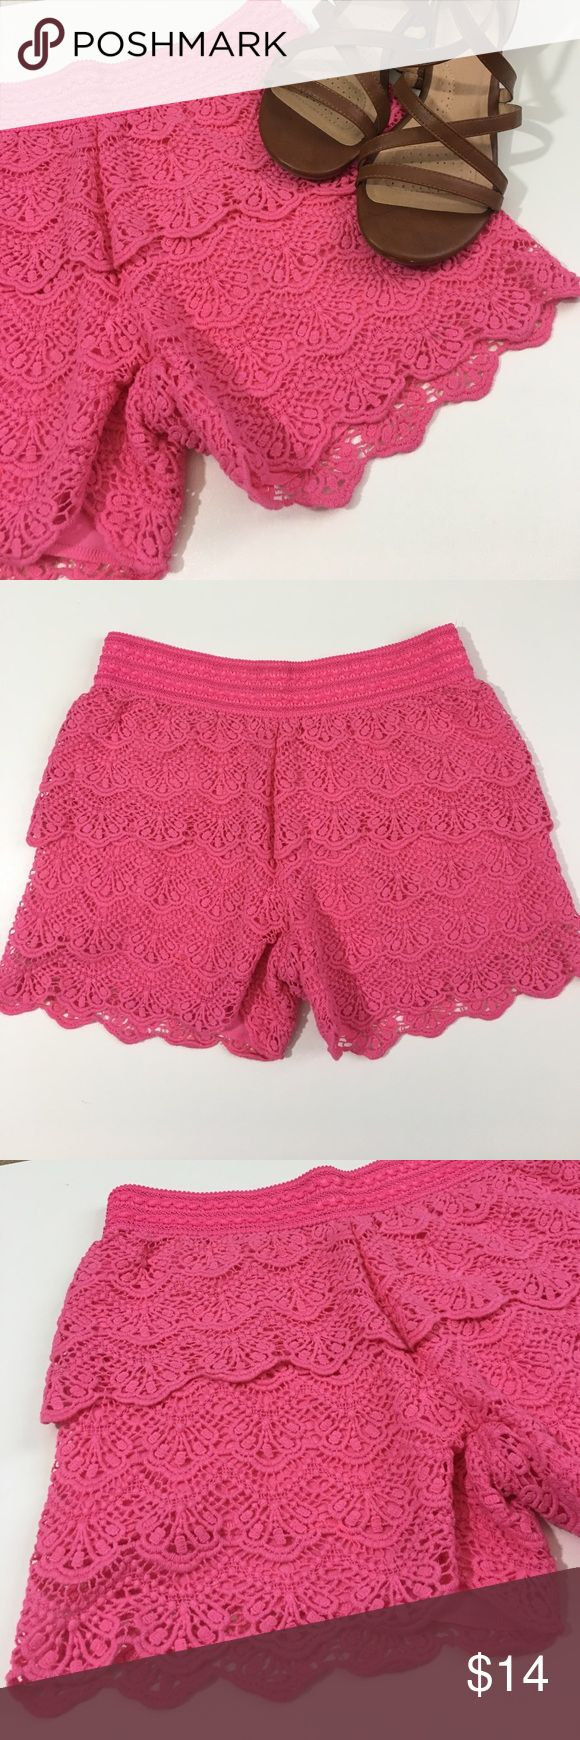 Pink lace shorts Pink tiered lace shorts. Elastic waist. True to size Justice Bottoms Shorts